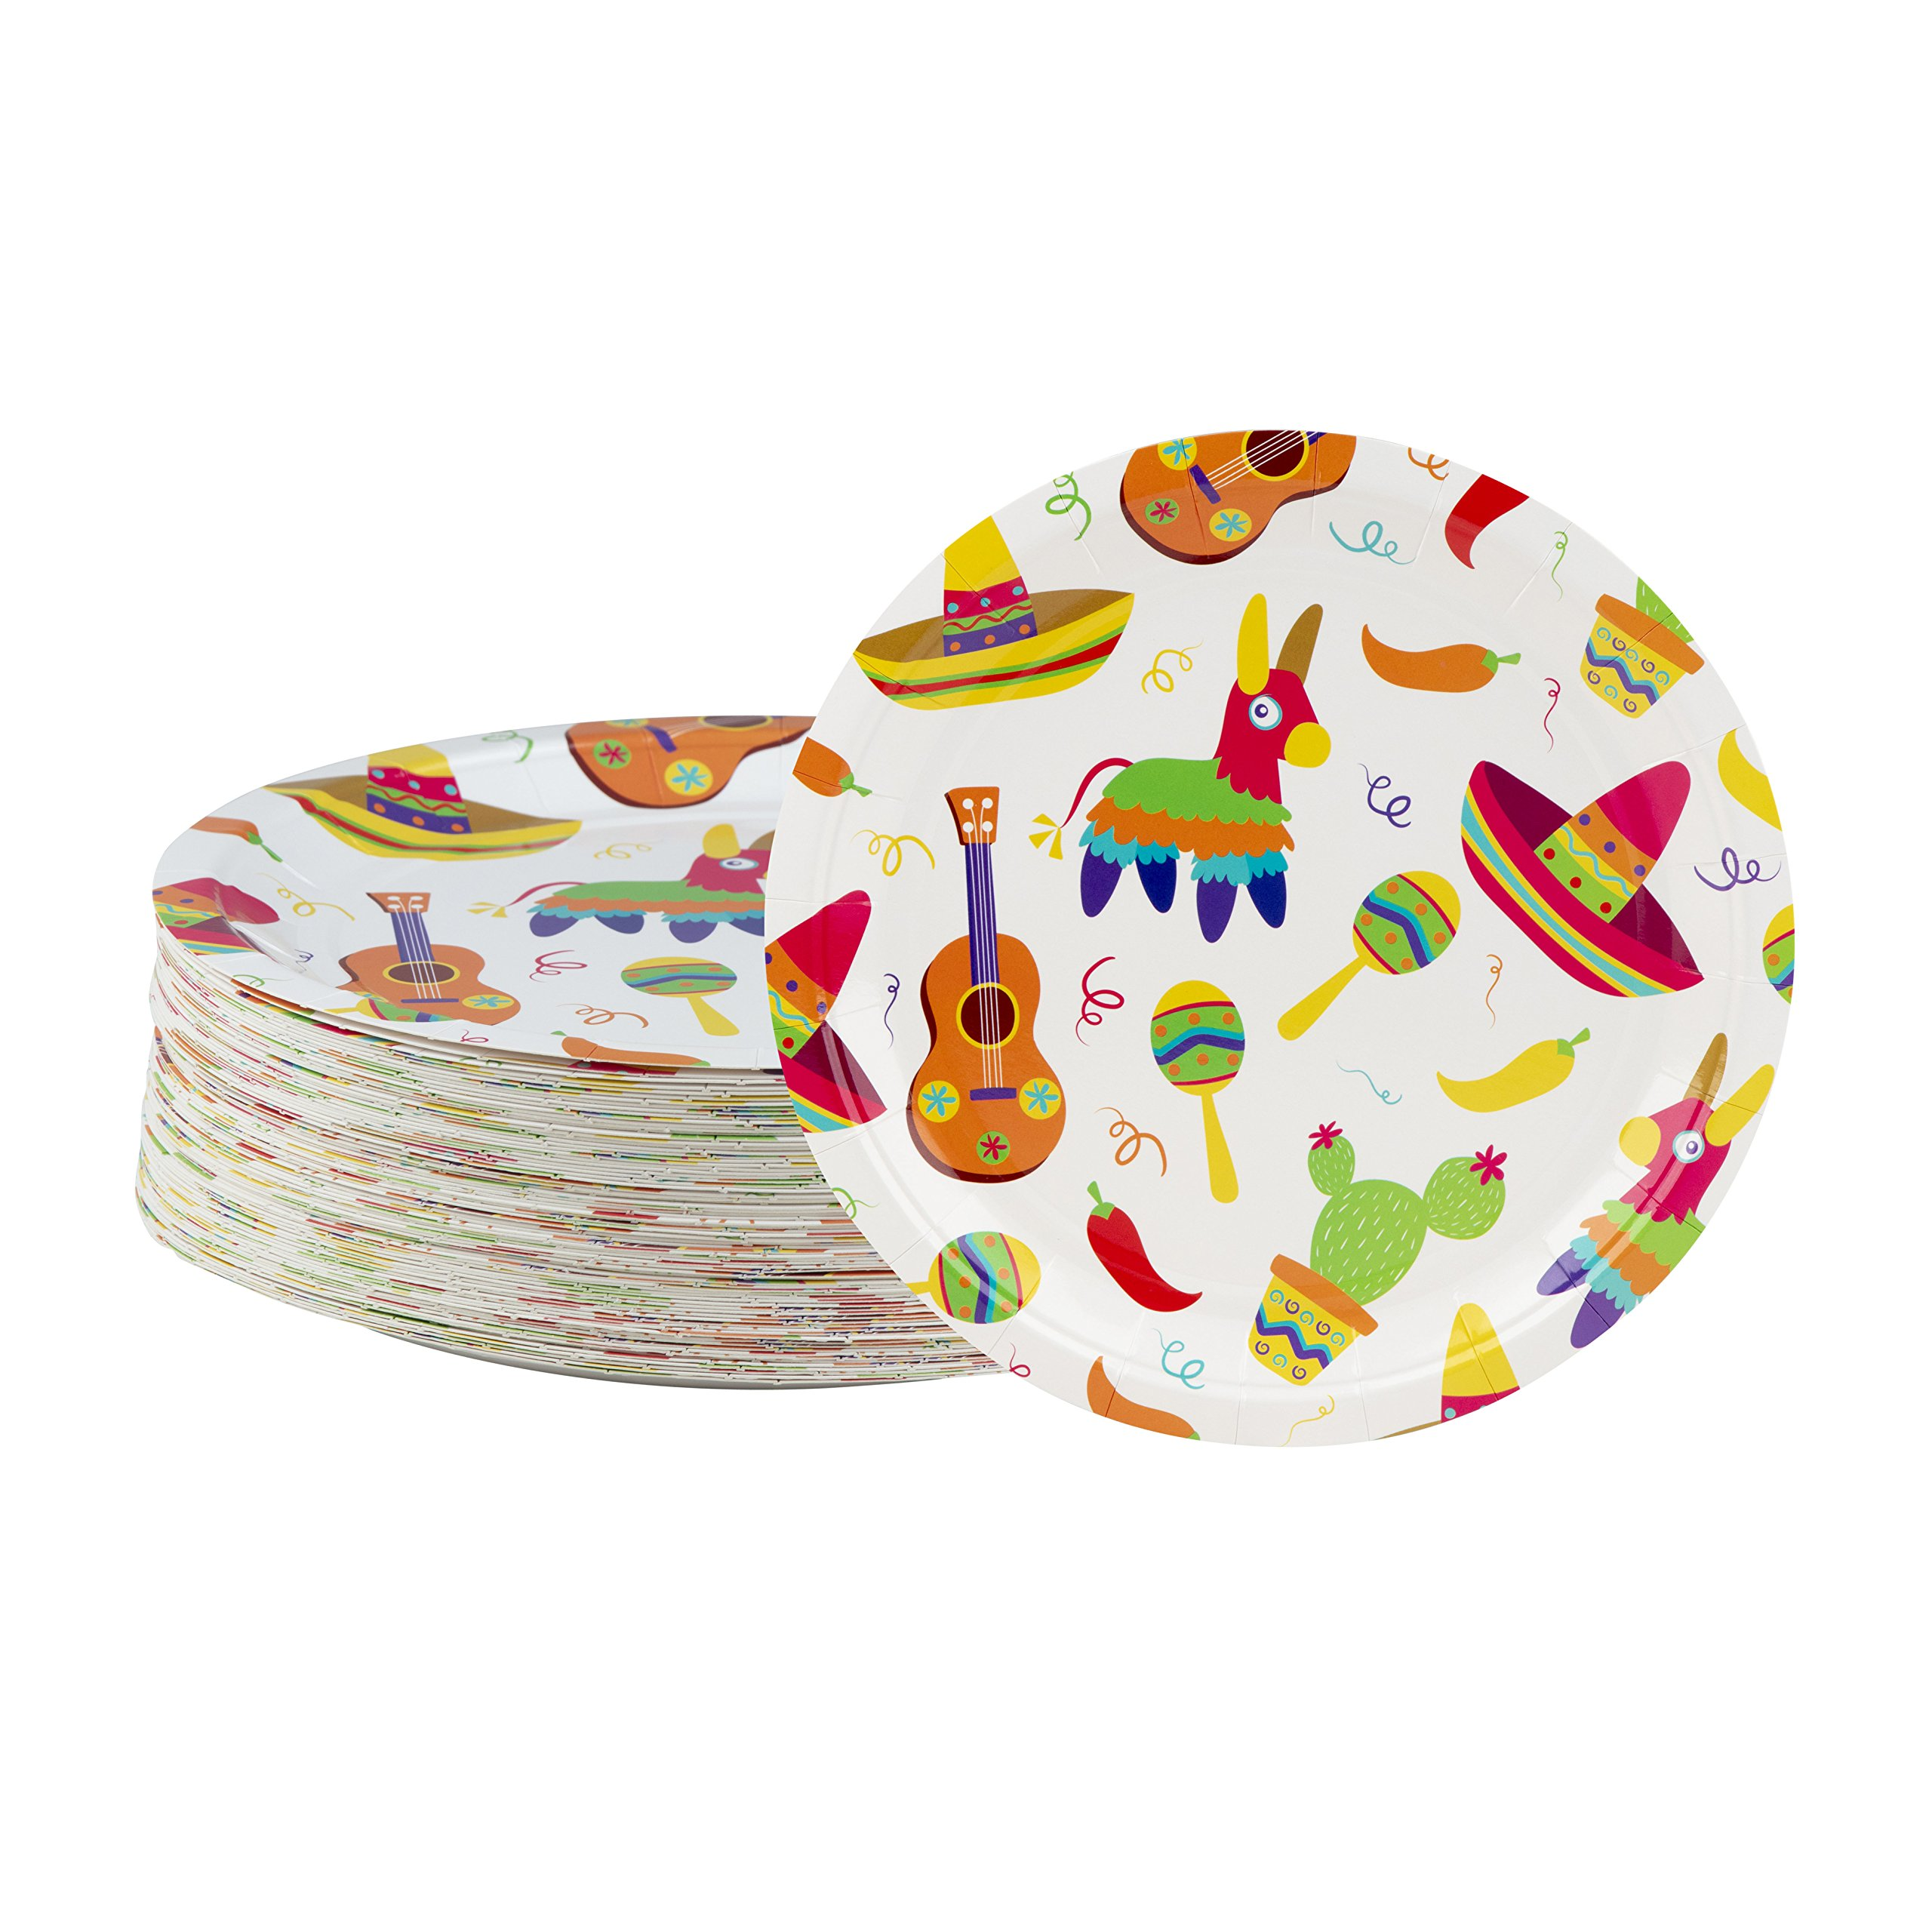 Disposable Plates - 80-Count Paper Plates, Mexican Fiesta Party Supplies for Appetizer, Lunch, Dinner, and Dessert, Birthdays, Cinco de Mayo, 9 x 9 Inches